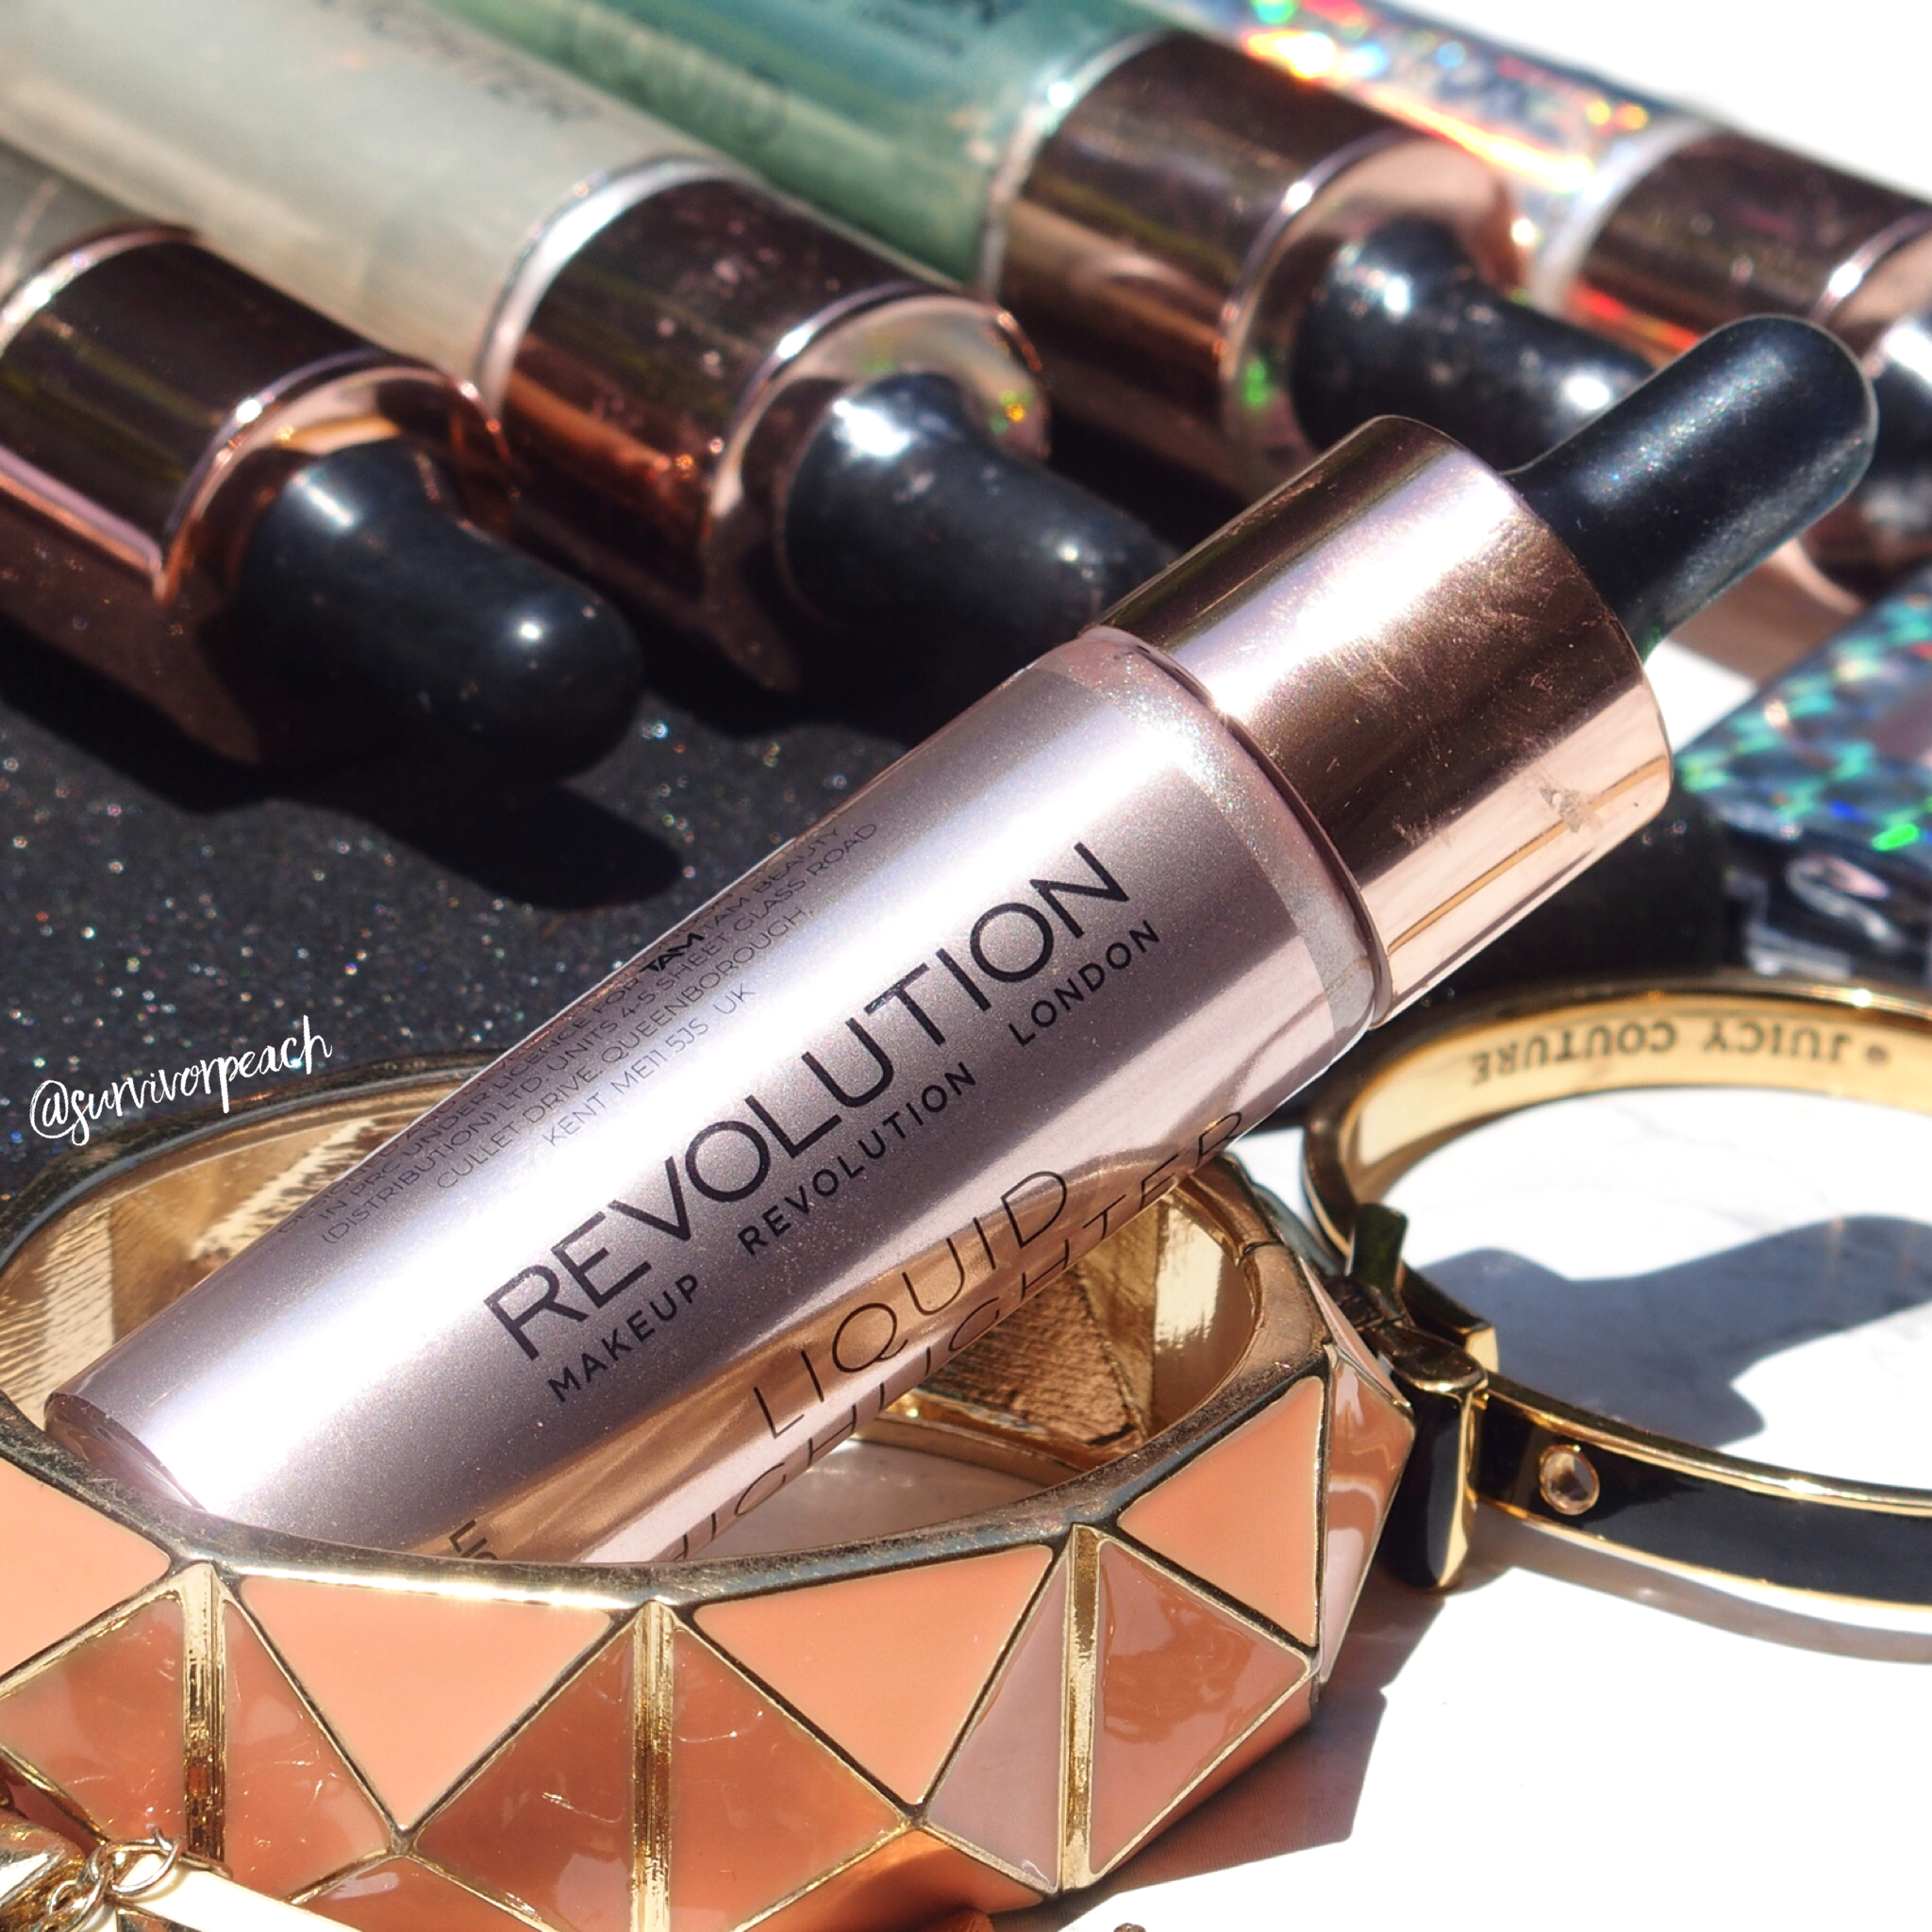 Revolution London Liquid highlighter - Liquid Starlight